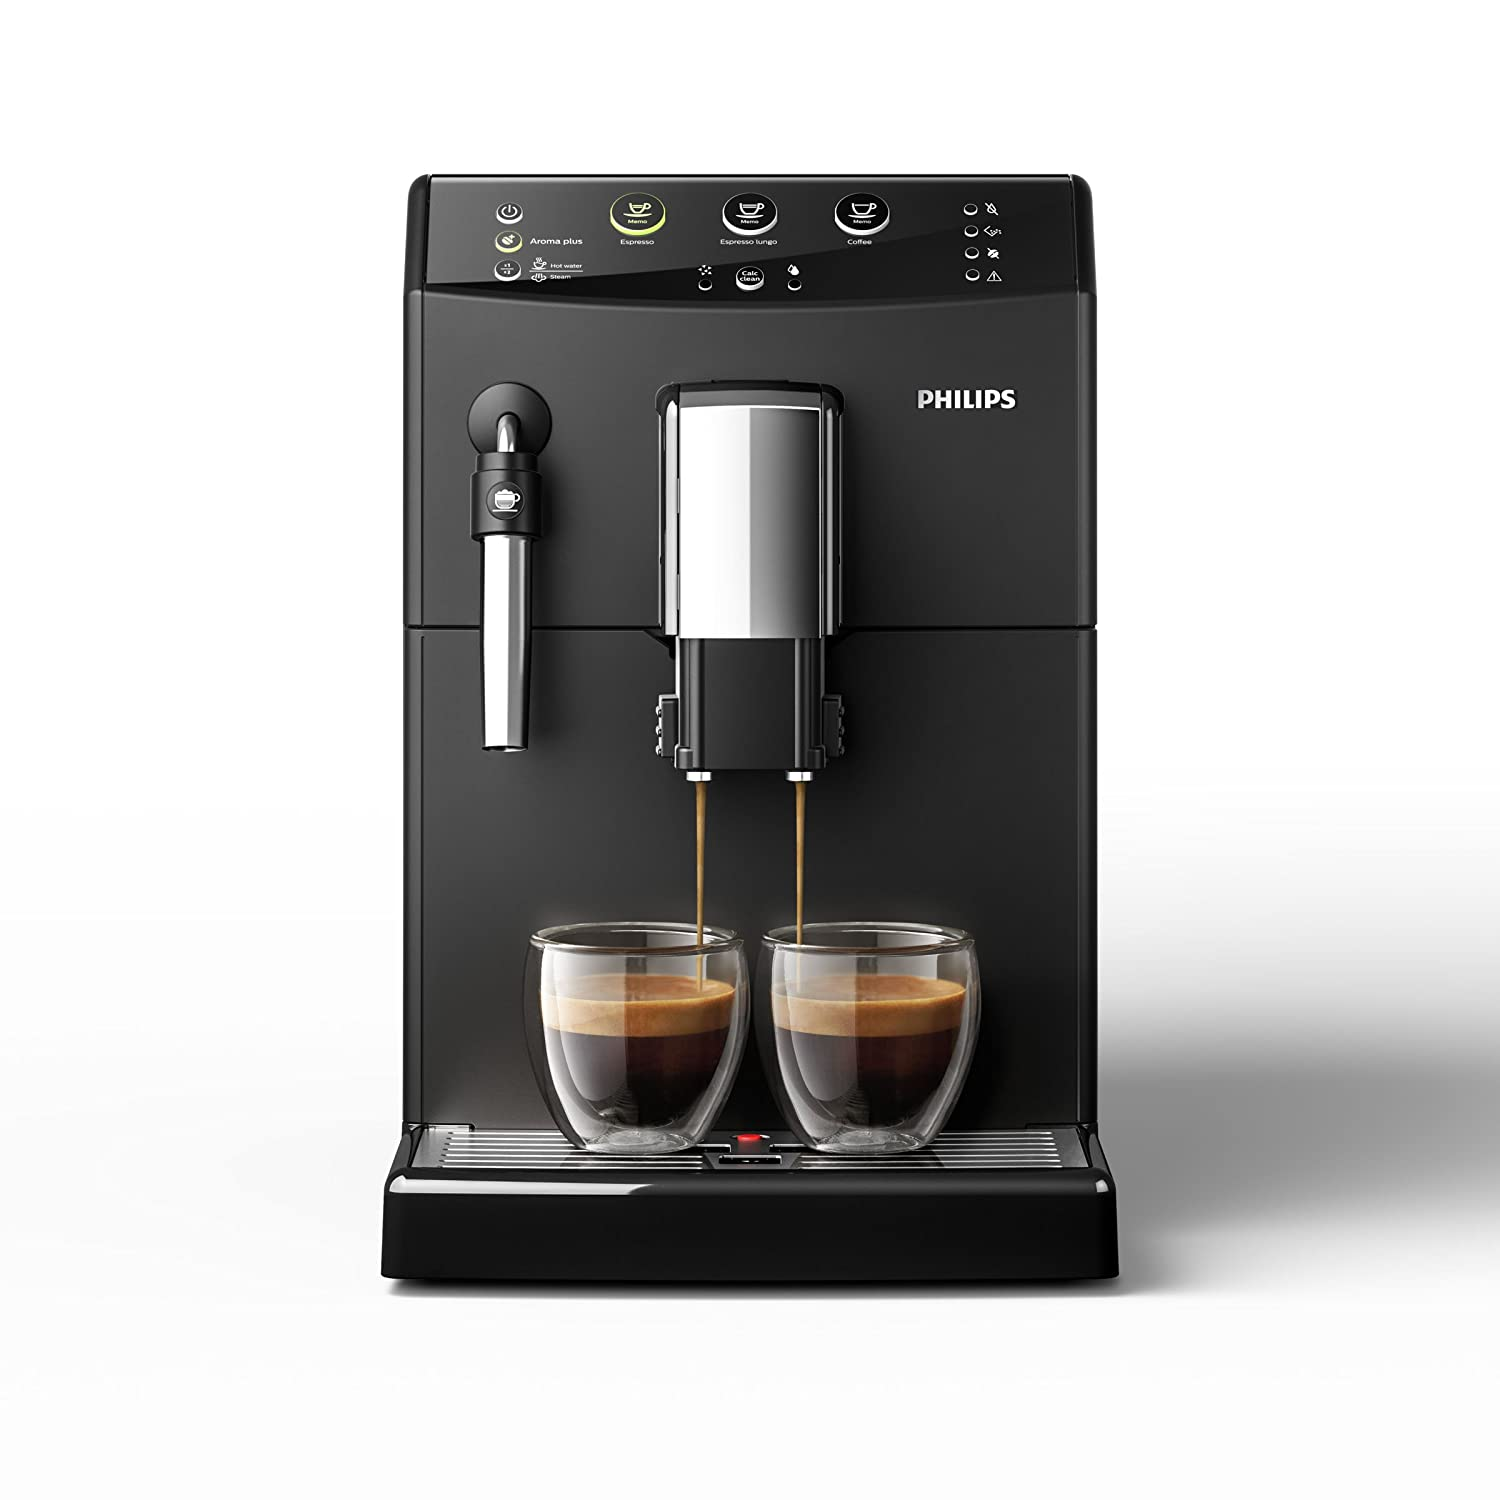 Philips 3000 series - Cafetera (Independiente, Máquina espresso, 1,8 L, Molinillo integrado, 1850 W, Negro)